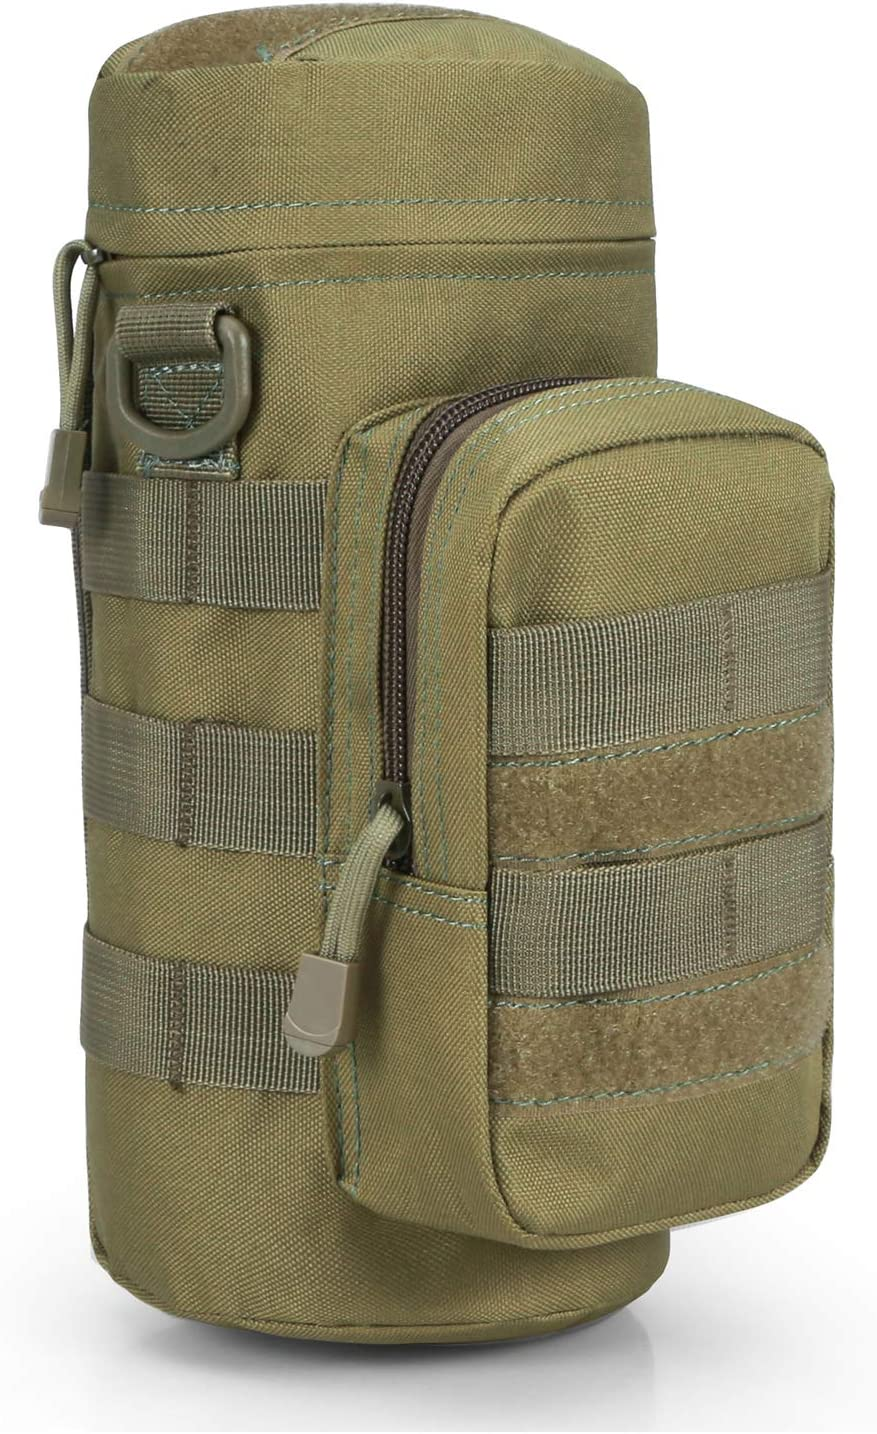 Tactical Molle Military Kettle Pouch Holder Travel Water Drawstring Bottle Bag